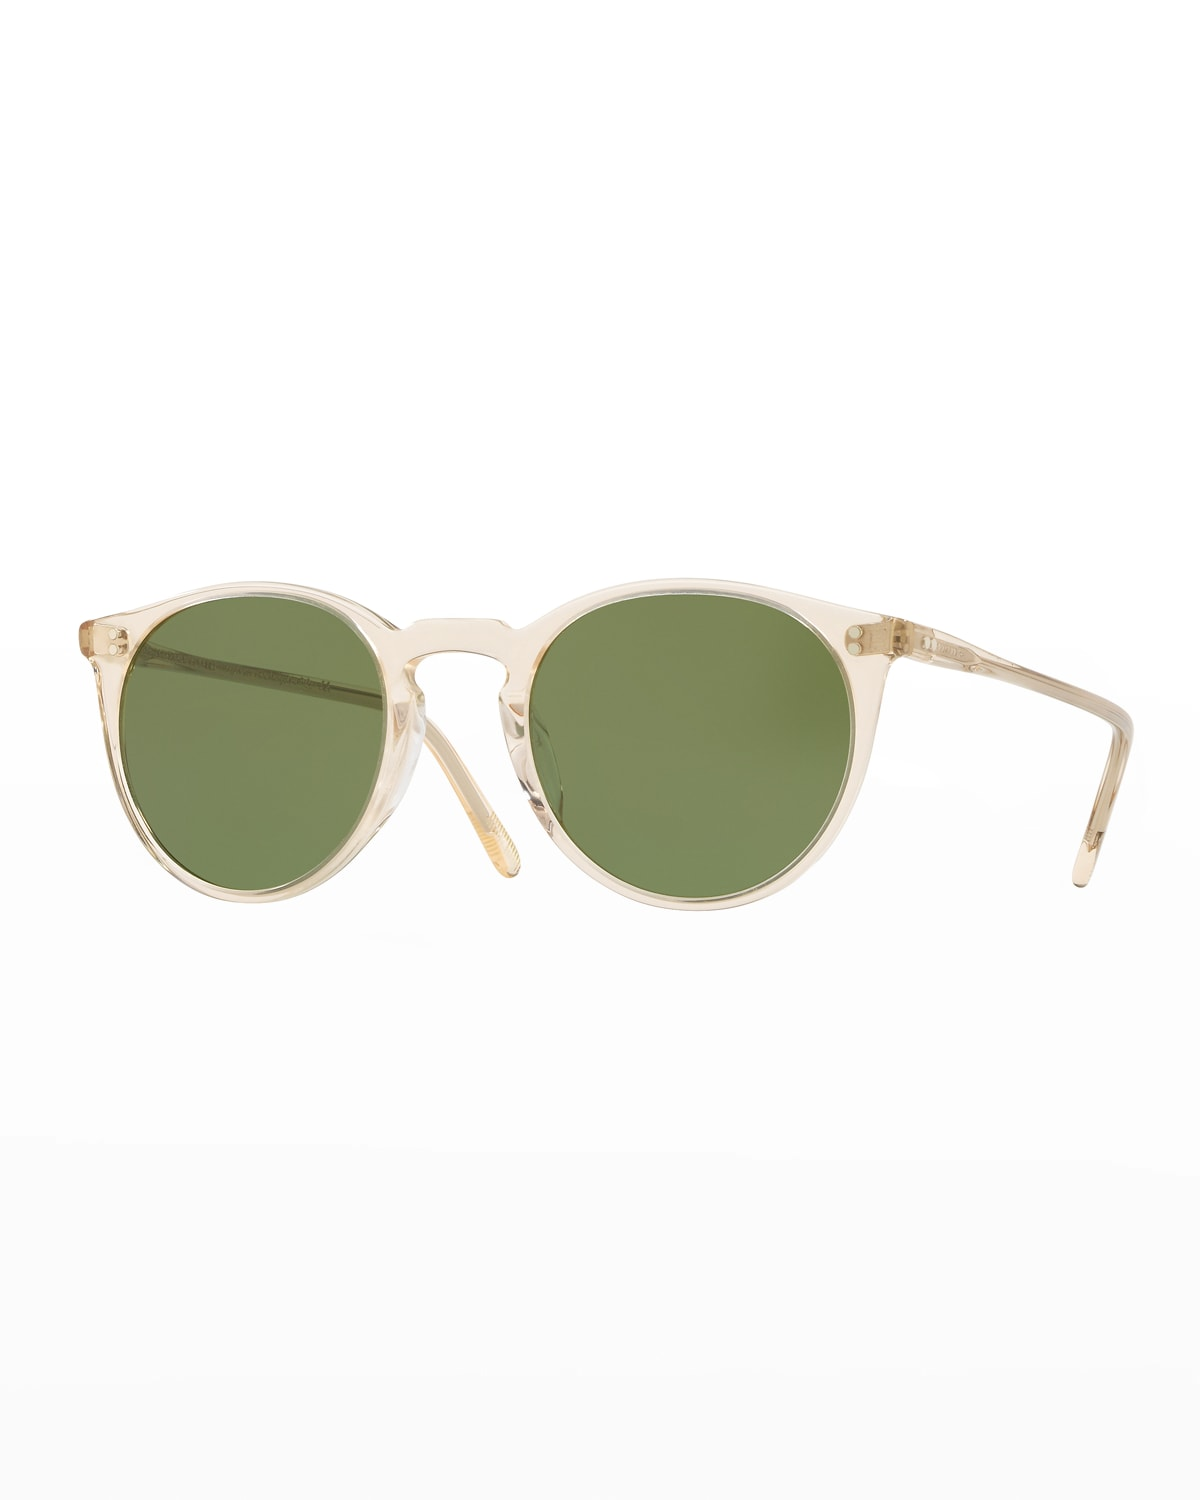 Men's O'Malley Peaked Round Sunglasses with Mineral Glass Lenses